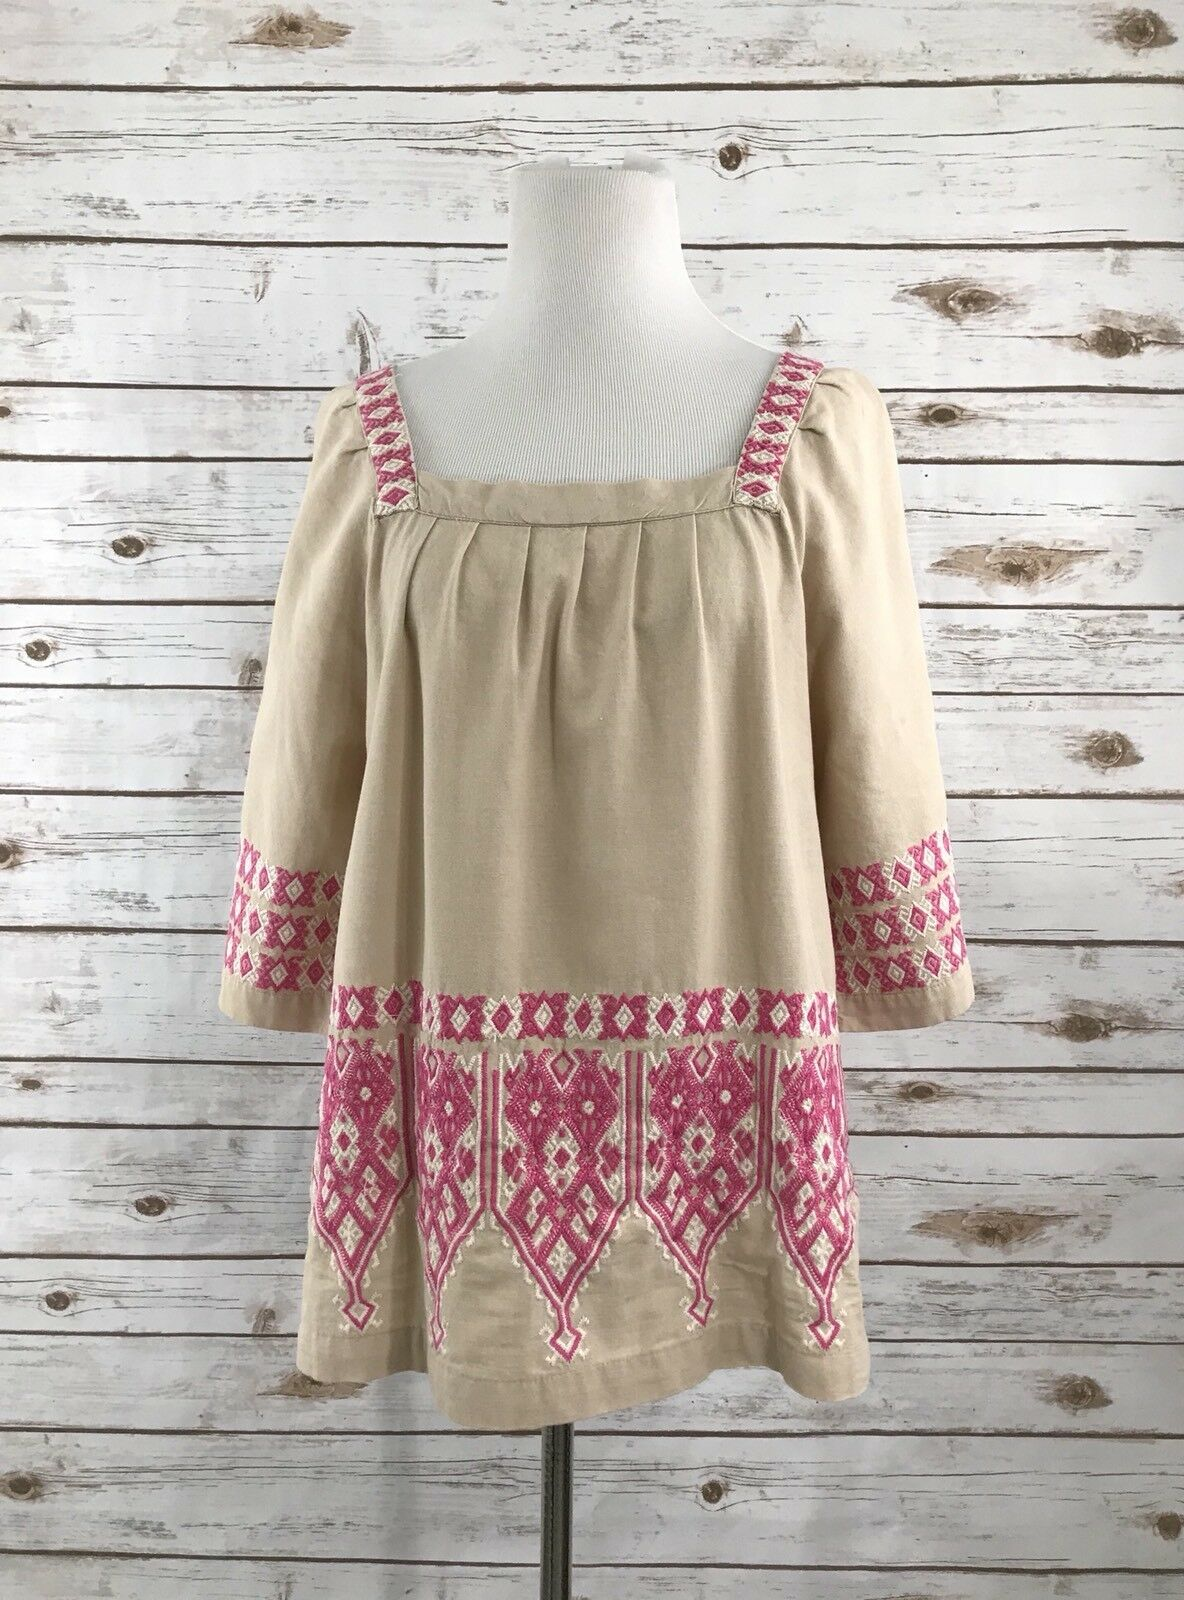 Calypso St Barth M Top Embroiderot Boho Blouse Shirt Cover Tan Rosa